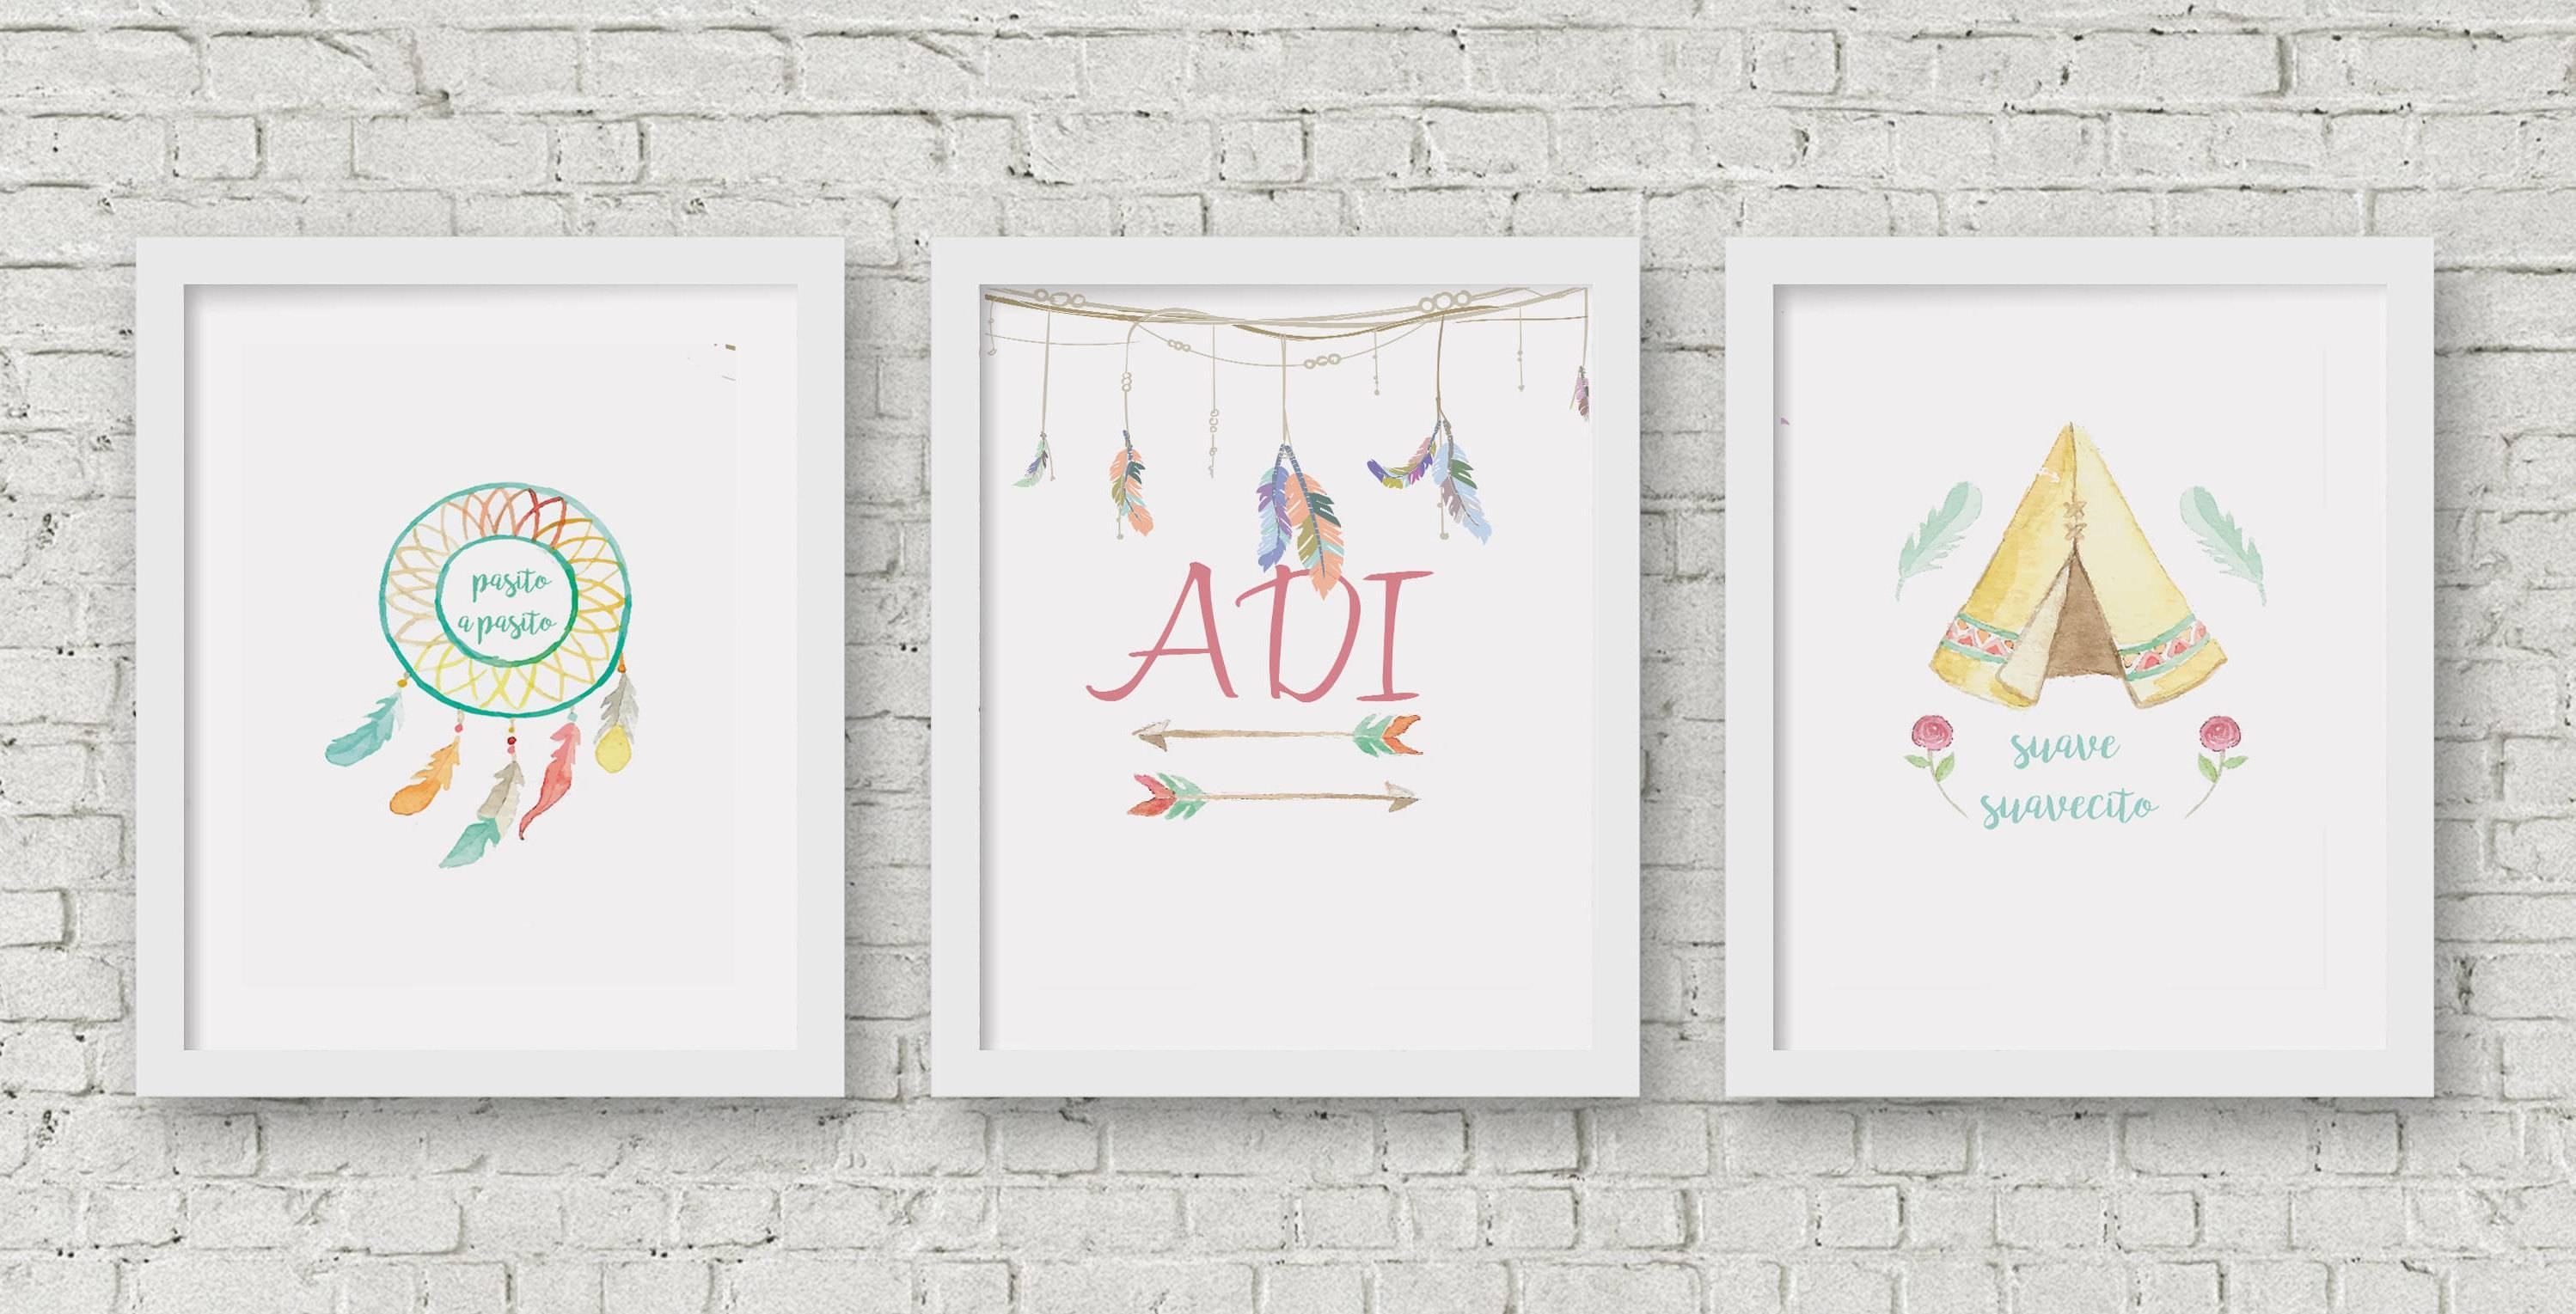 Boho Wall Art Set, Wall Decor Printable, Teenage Wall Poster Within Latest Teenage Wall Art (View 11 of 30)